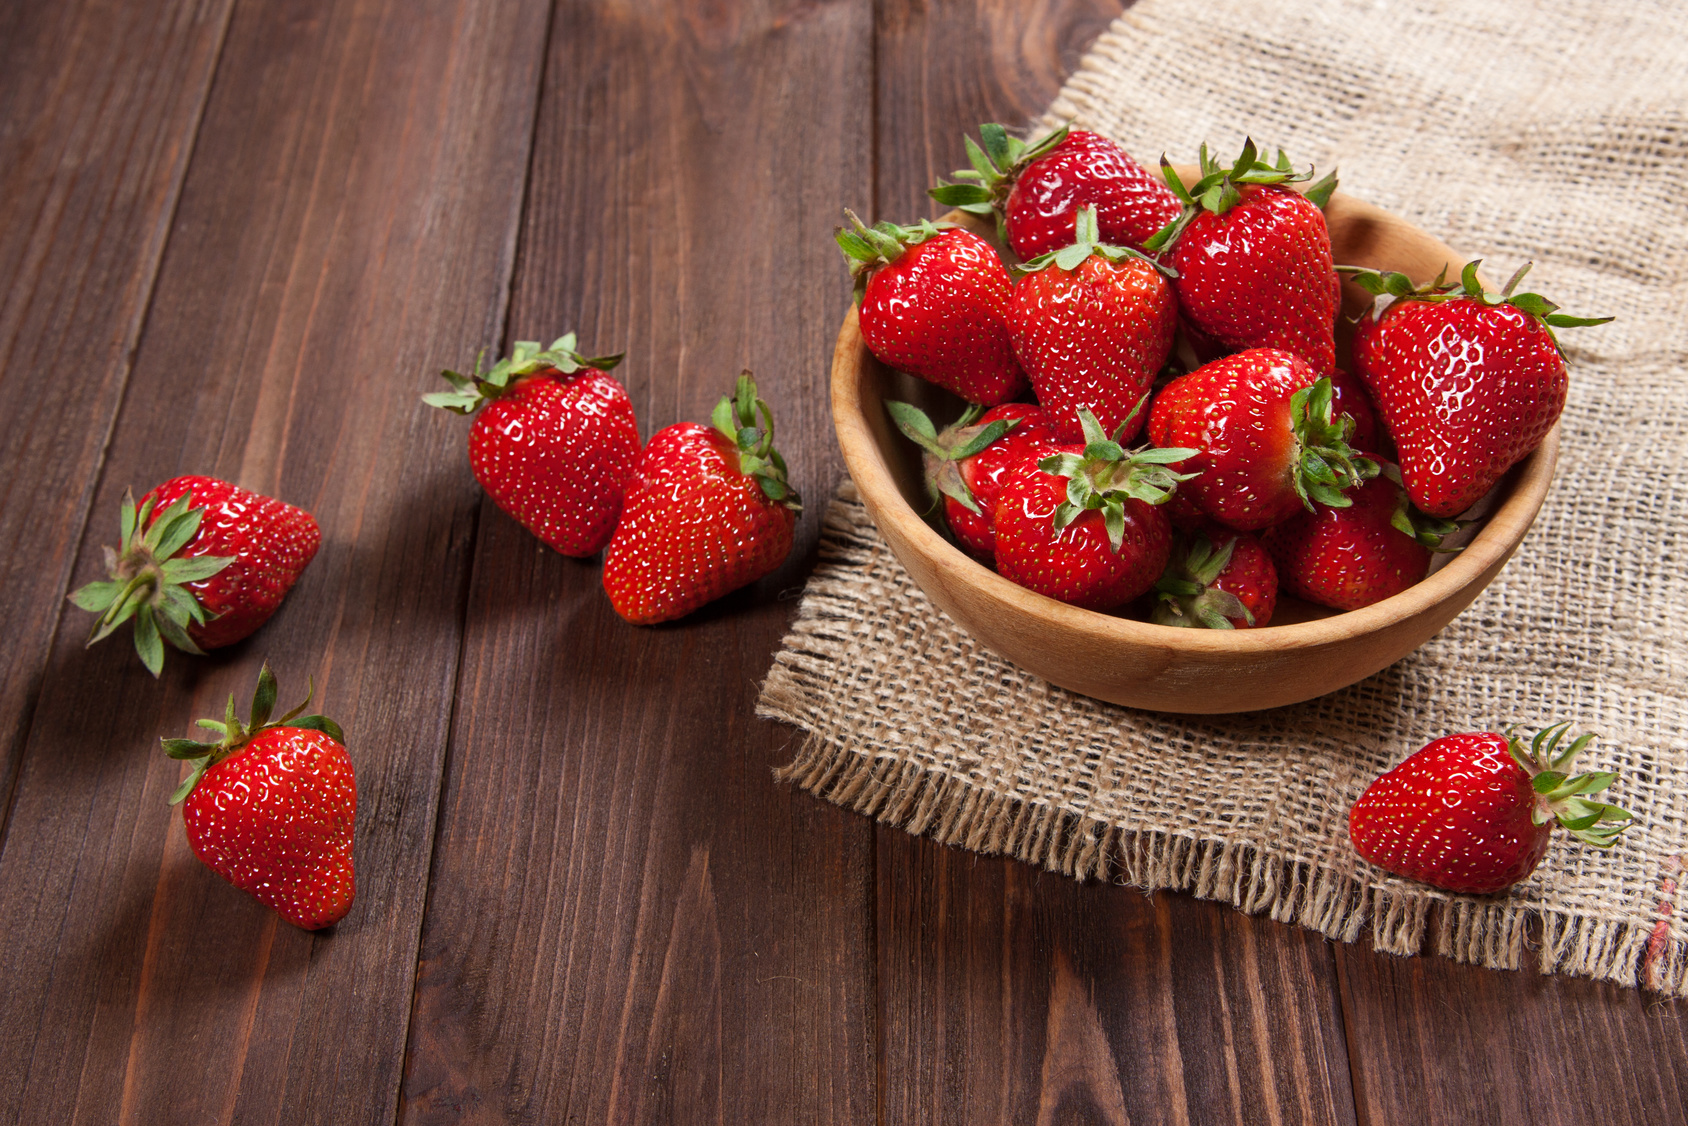 The strawberries from Morocco are now available!